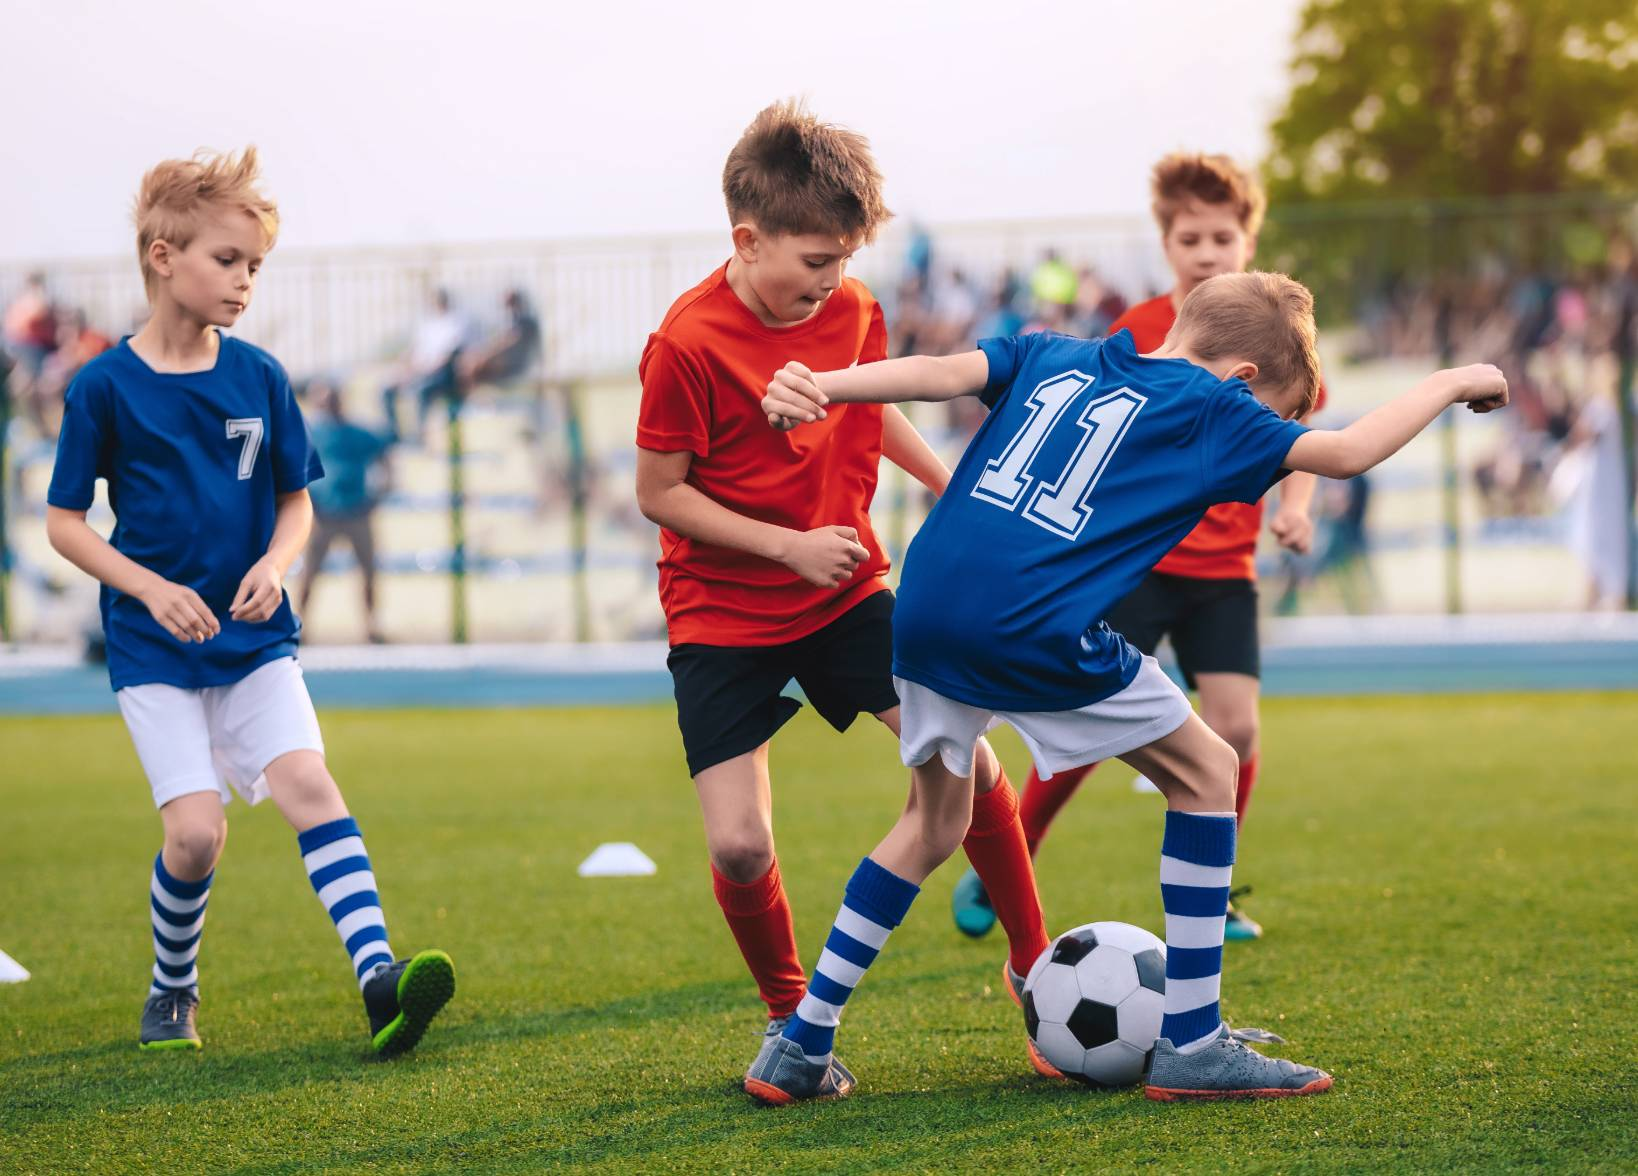 Image of kids playing soccer